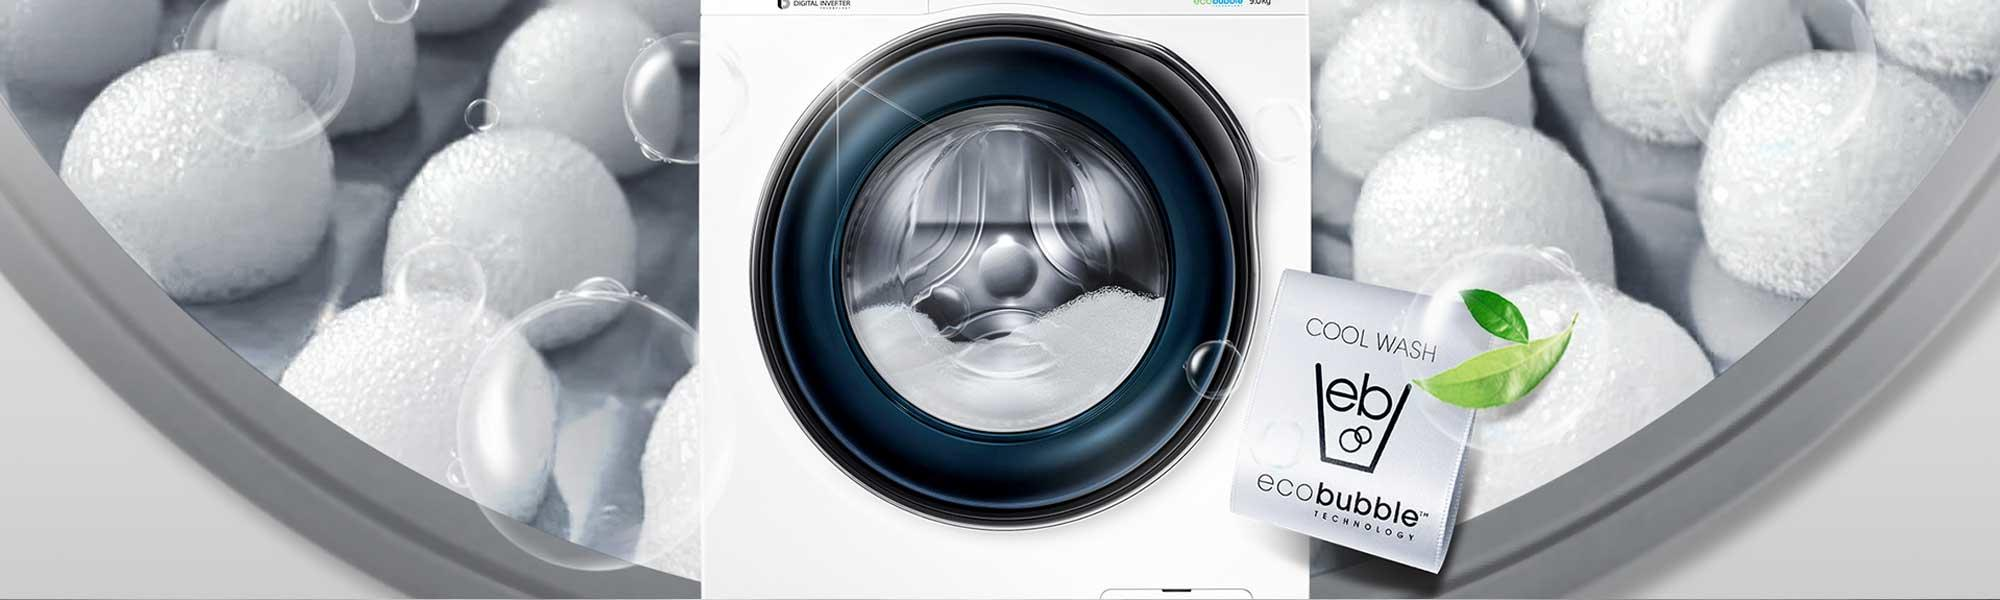 Samsung WD90J6410AW 9Kg 1400 Spin Washer Dryer